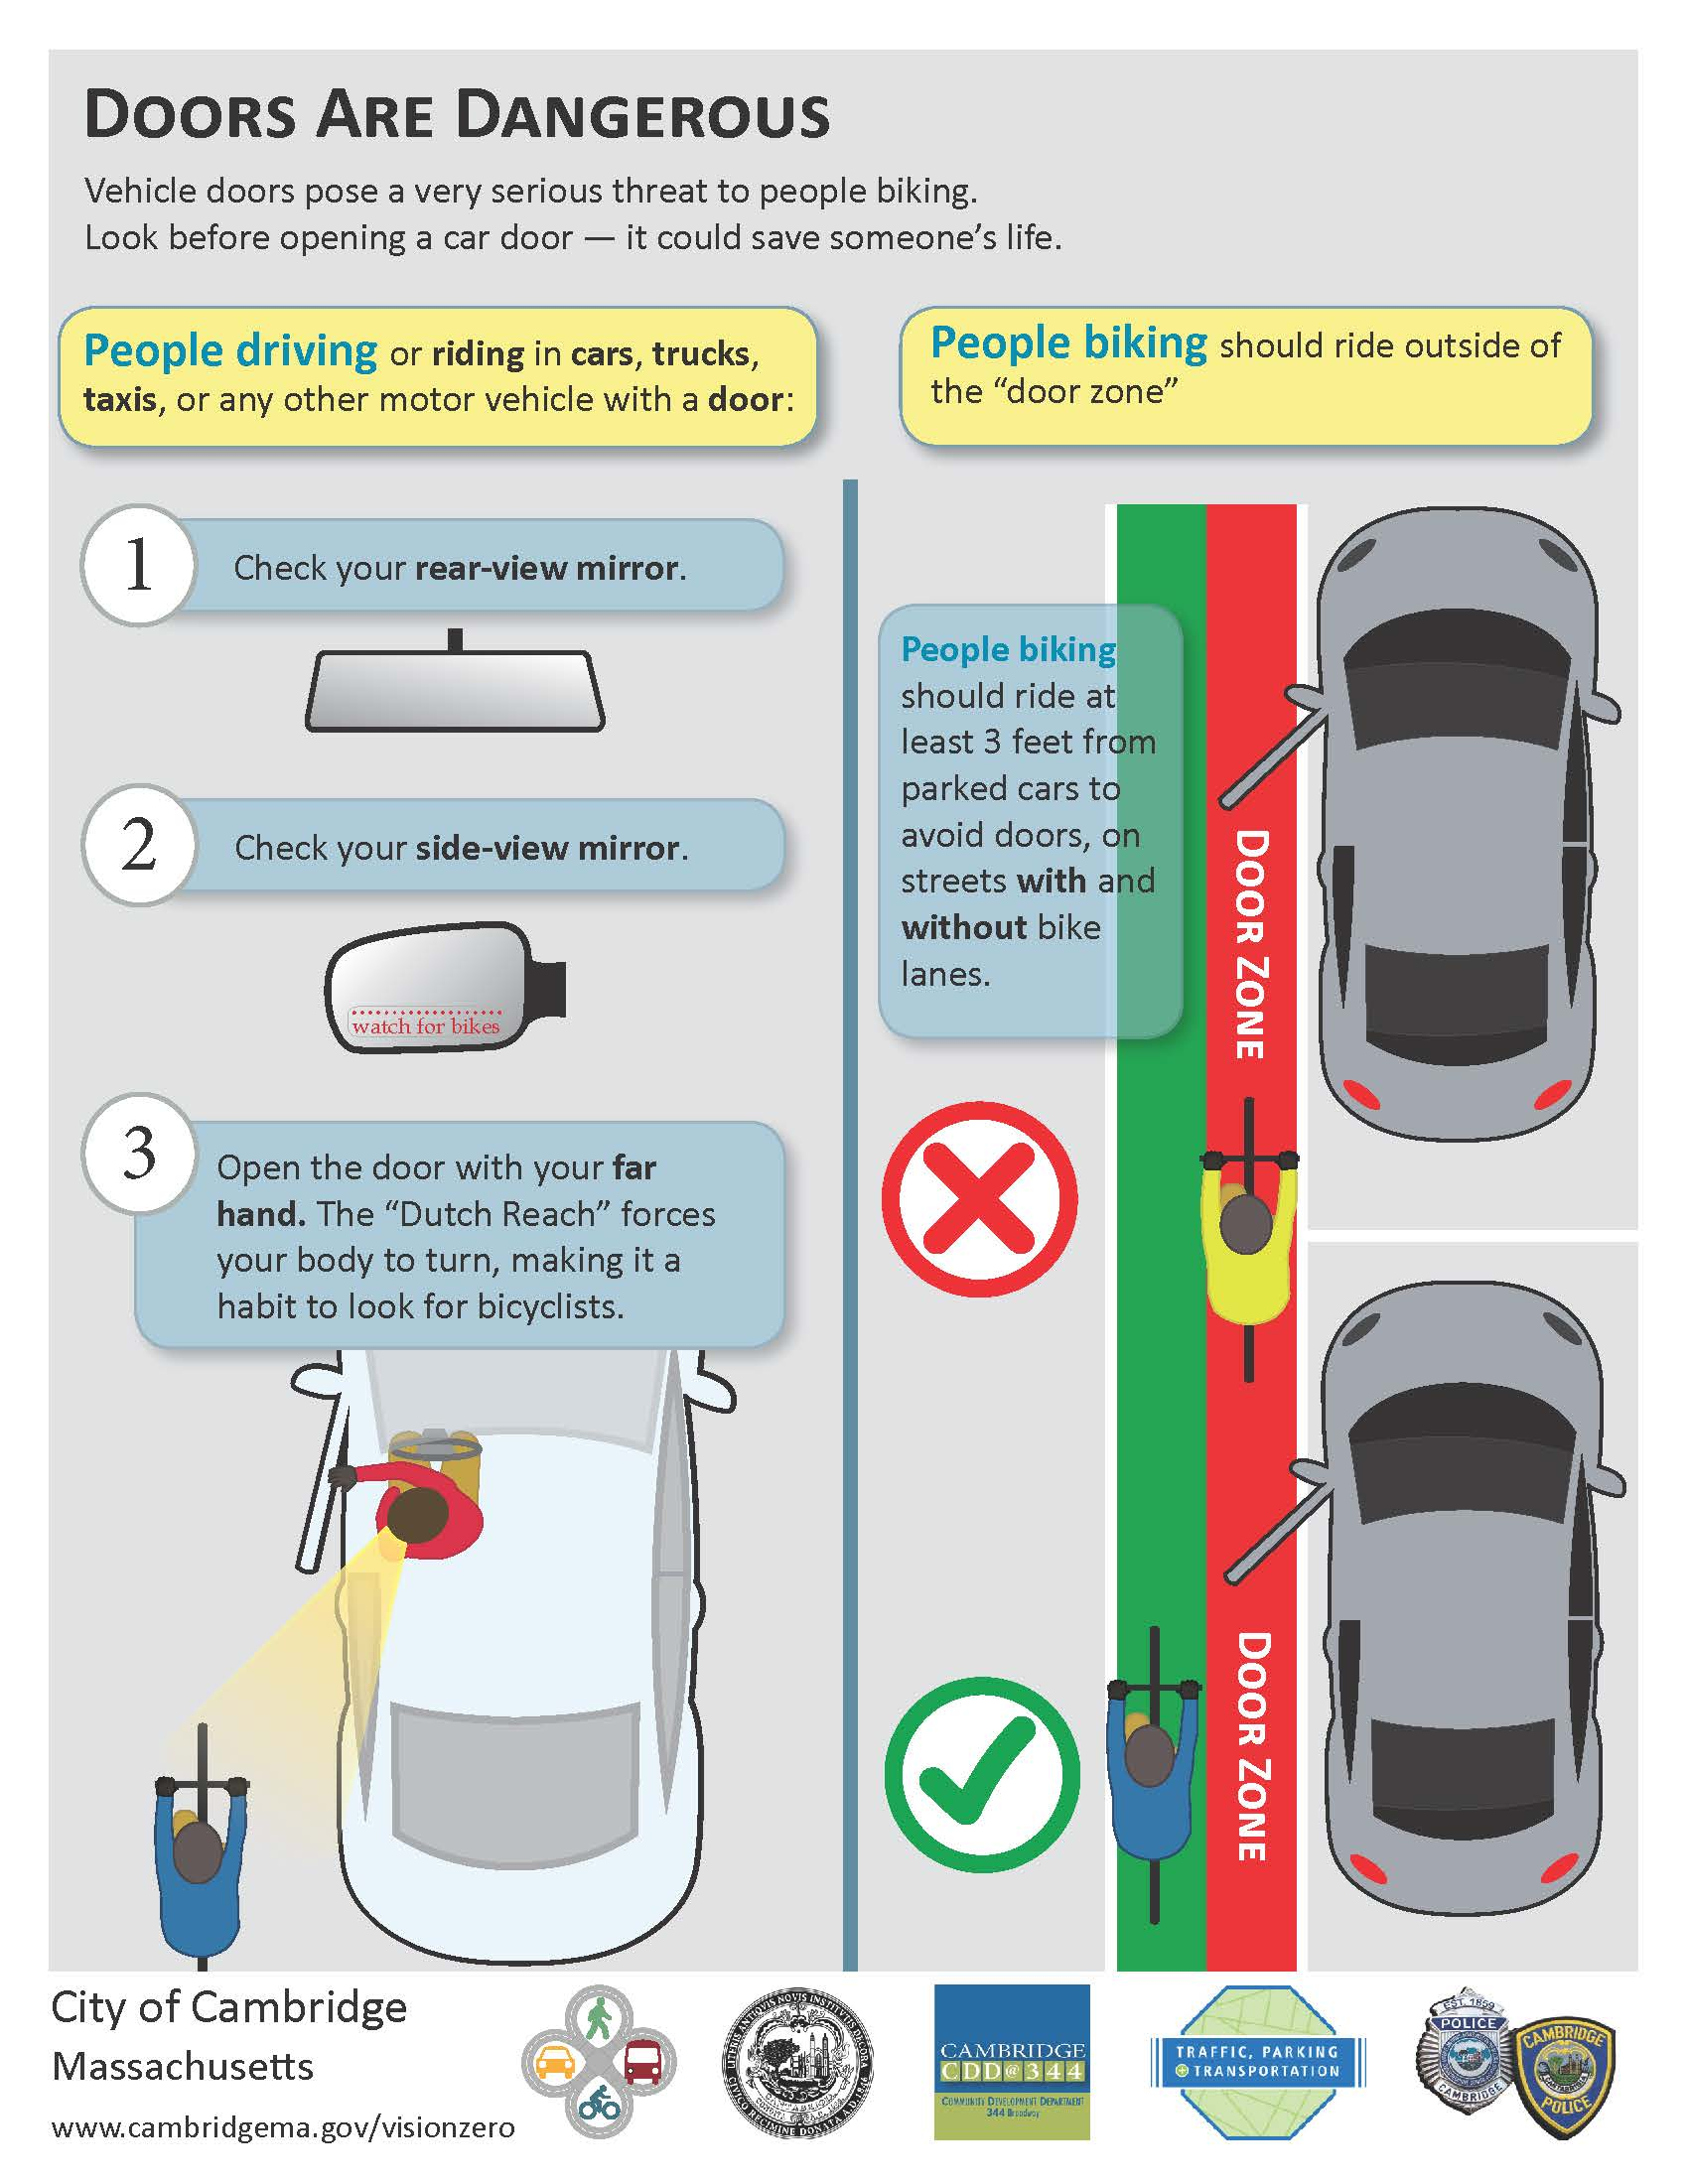 Image showing how to bike near car doors